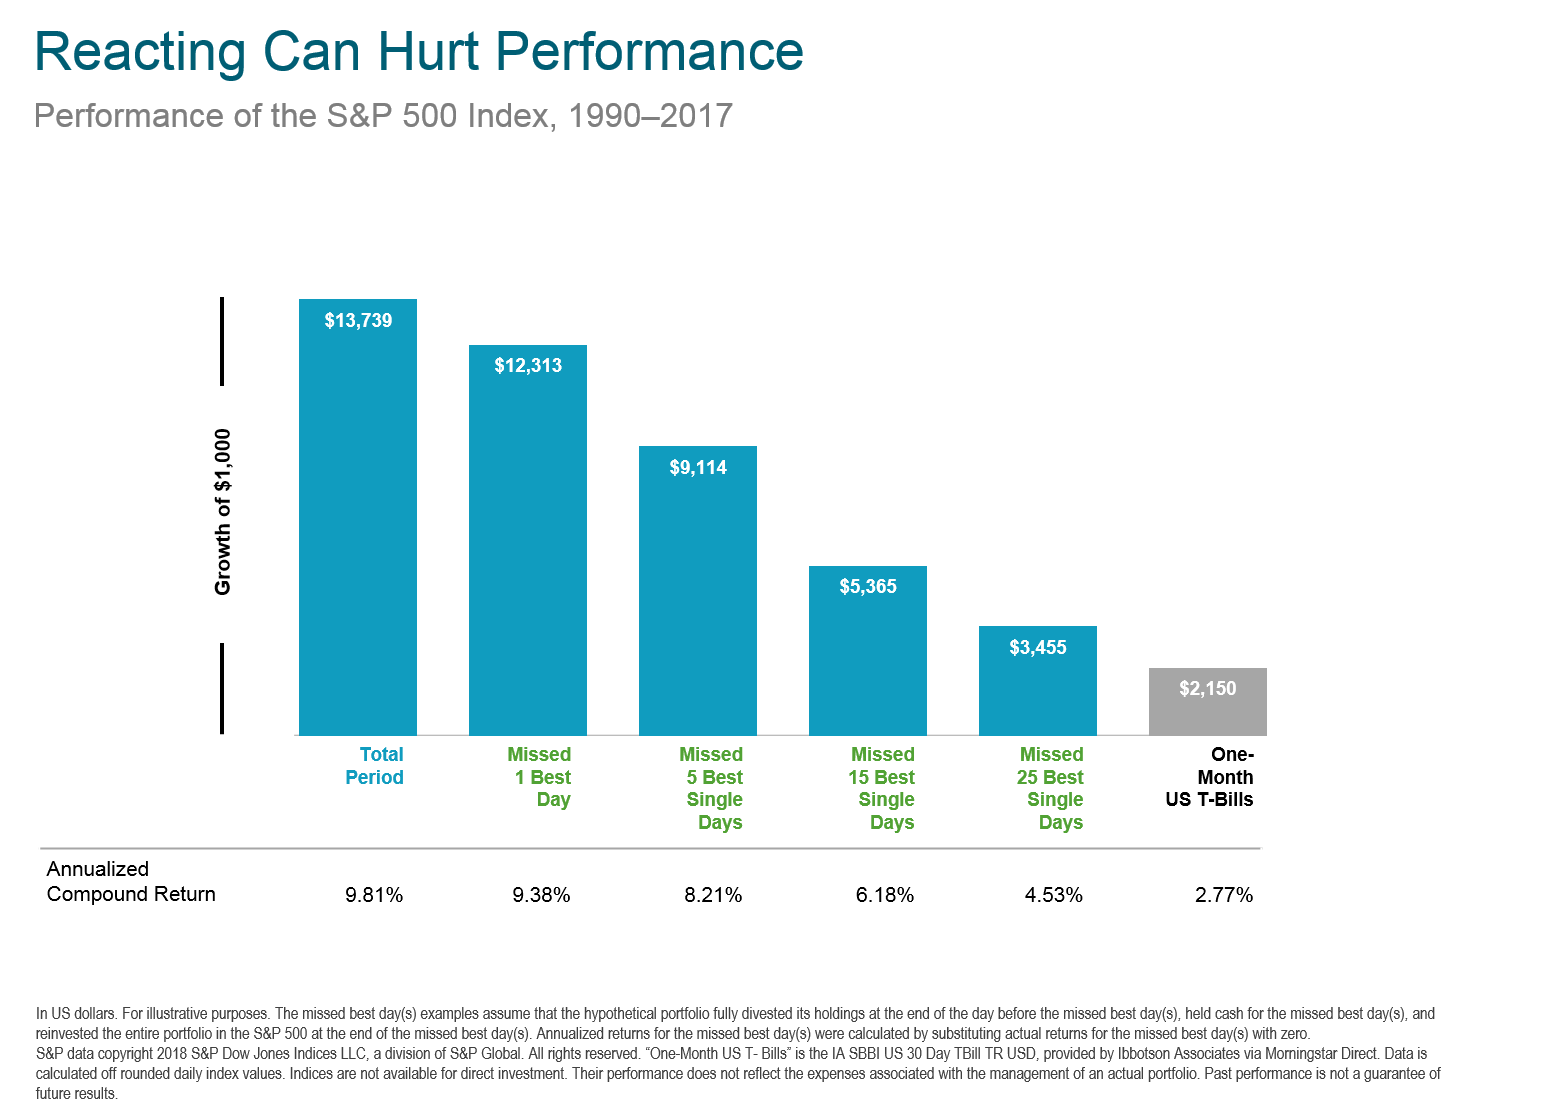 Missing only a few days of strong returns can drastically impact overall performance.